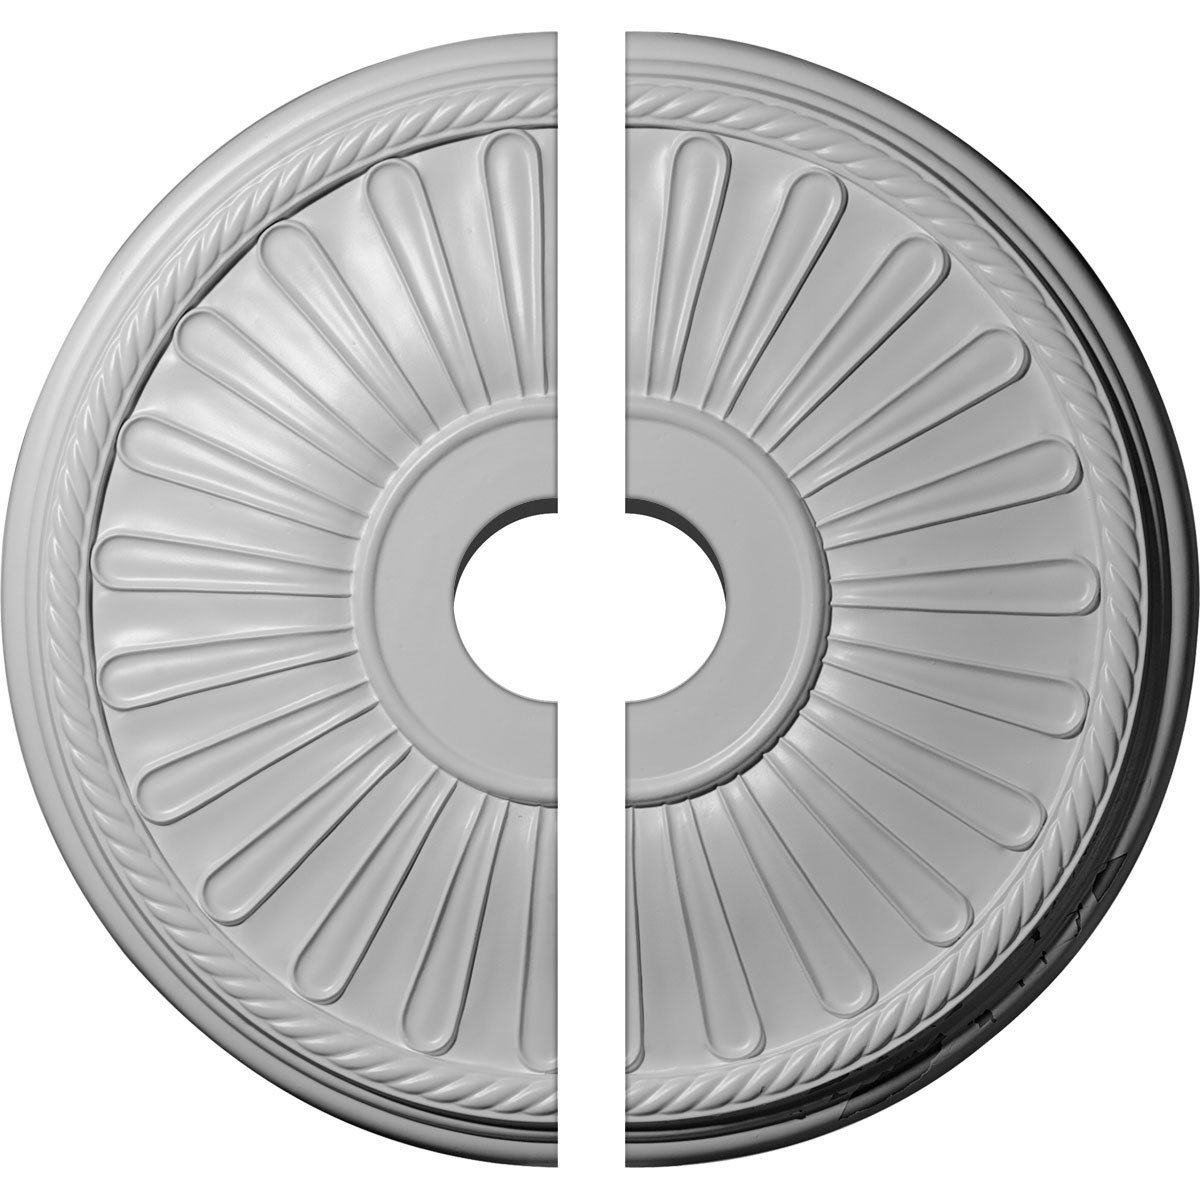 """EM-CM22LN2-03500 - 19 7/8""""OD x 3 1/2""""ID x 1 1/4""""P Leandros Ceiling Medallion, Two Piece (Fits Canopies up to 6 3/8"""")"""